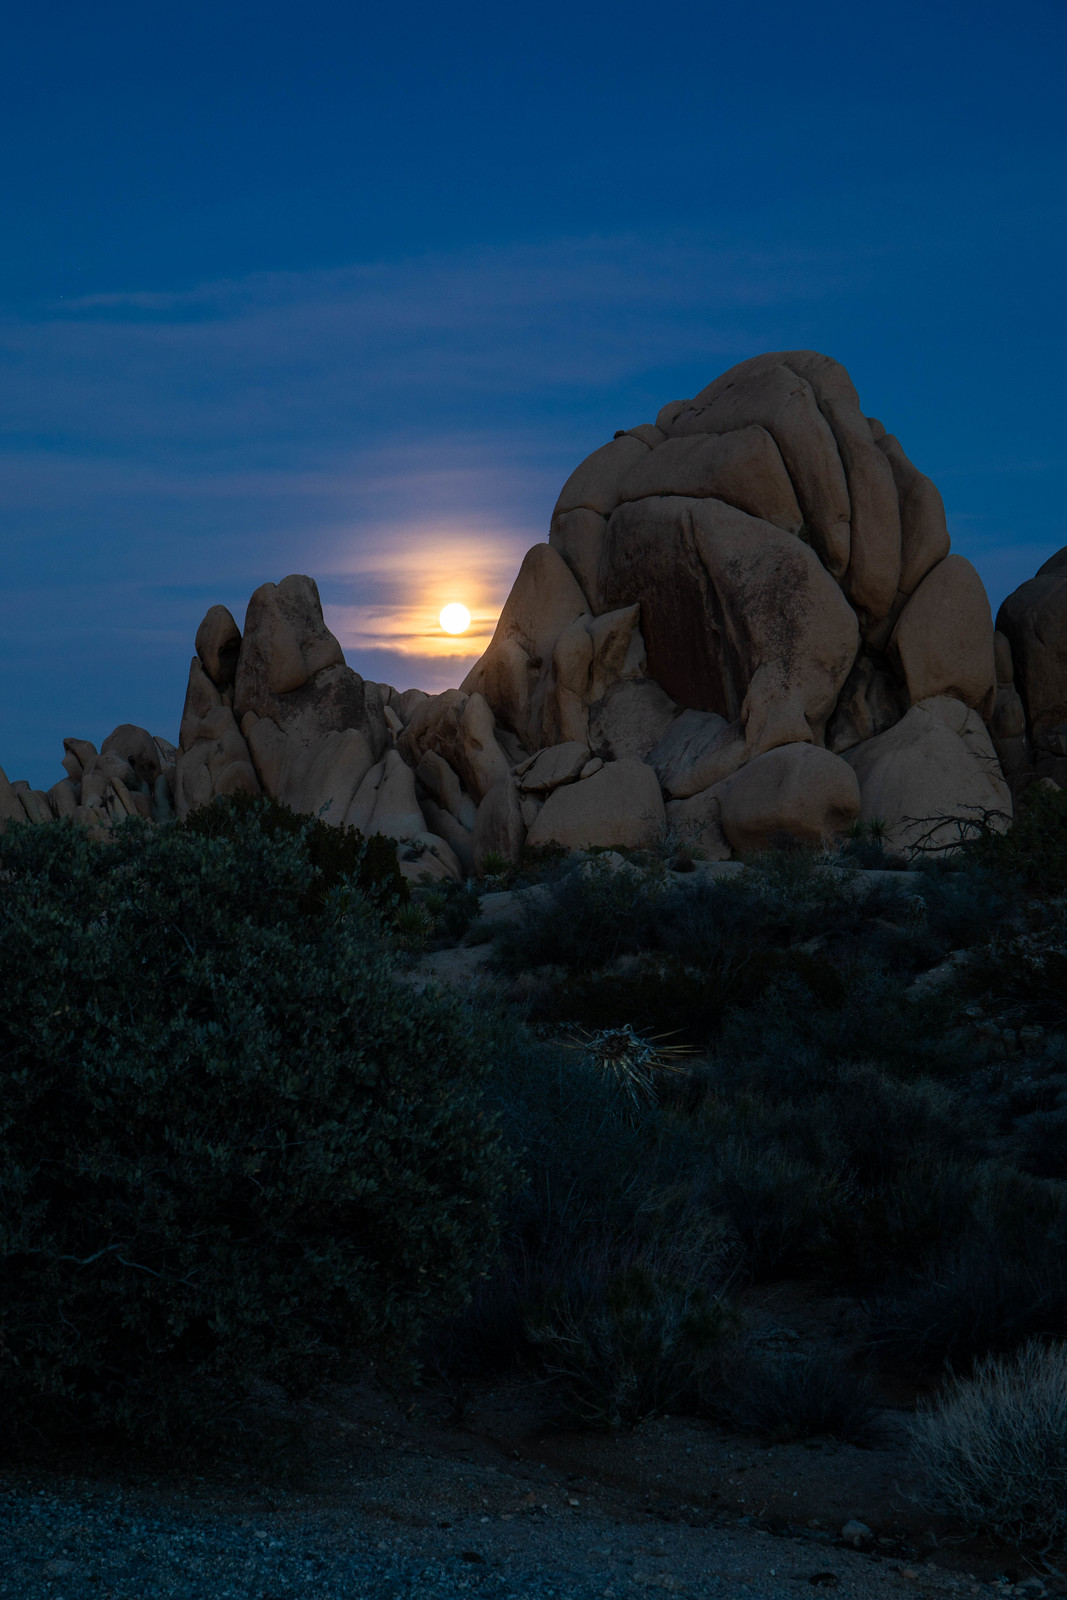 11.22. Joshua Tree National Park